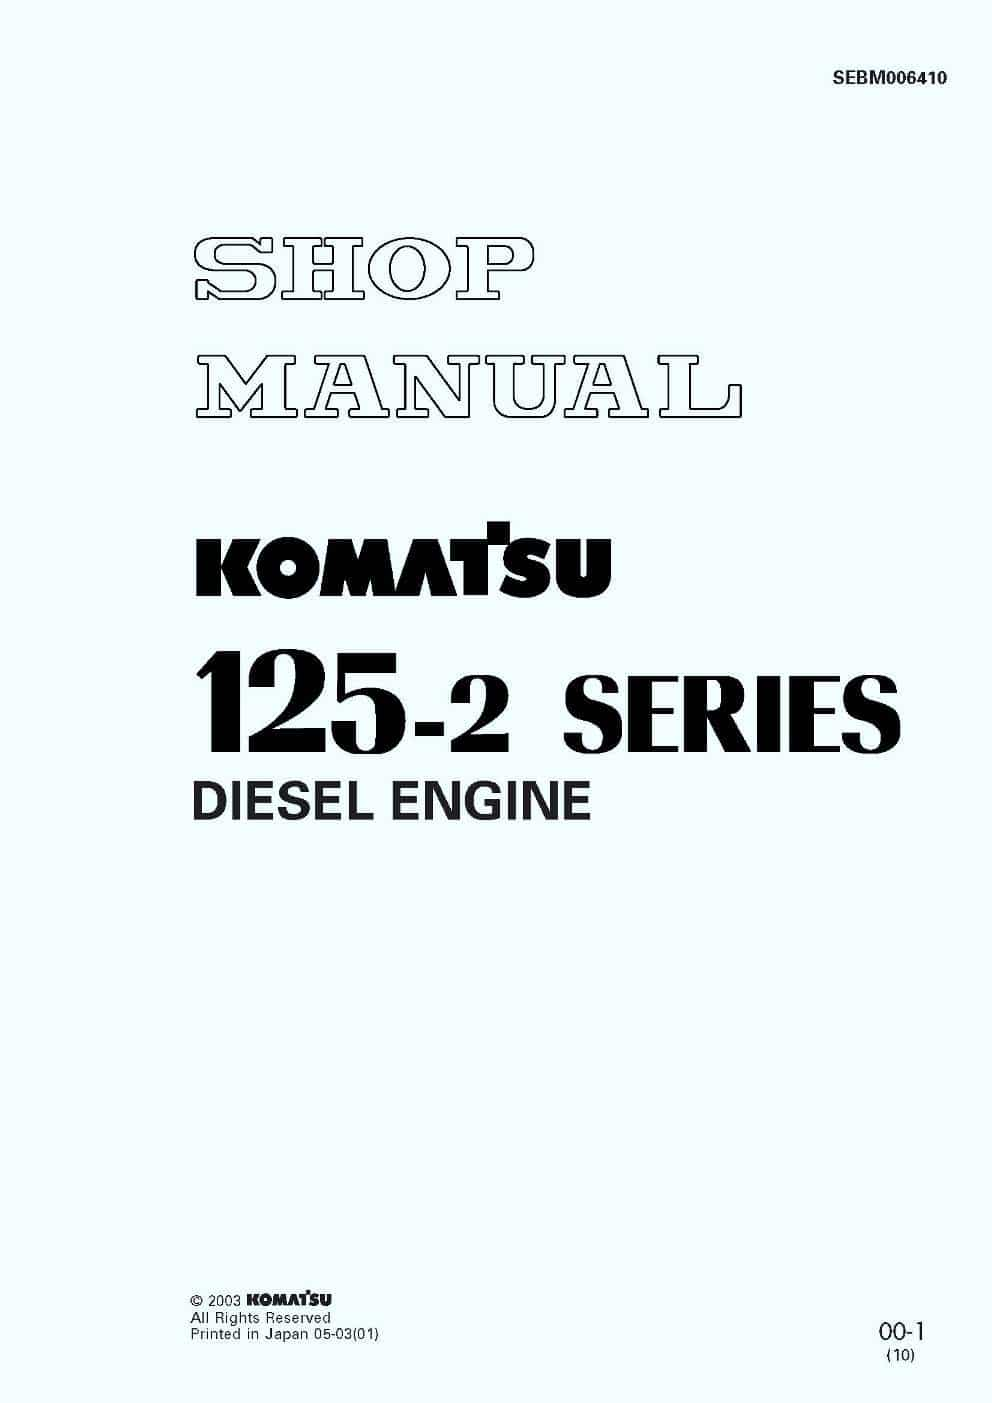 Komatsu DIESEL ENGINE 125-2 SERIES Workshop Repair Service